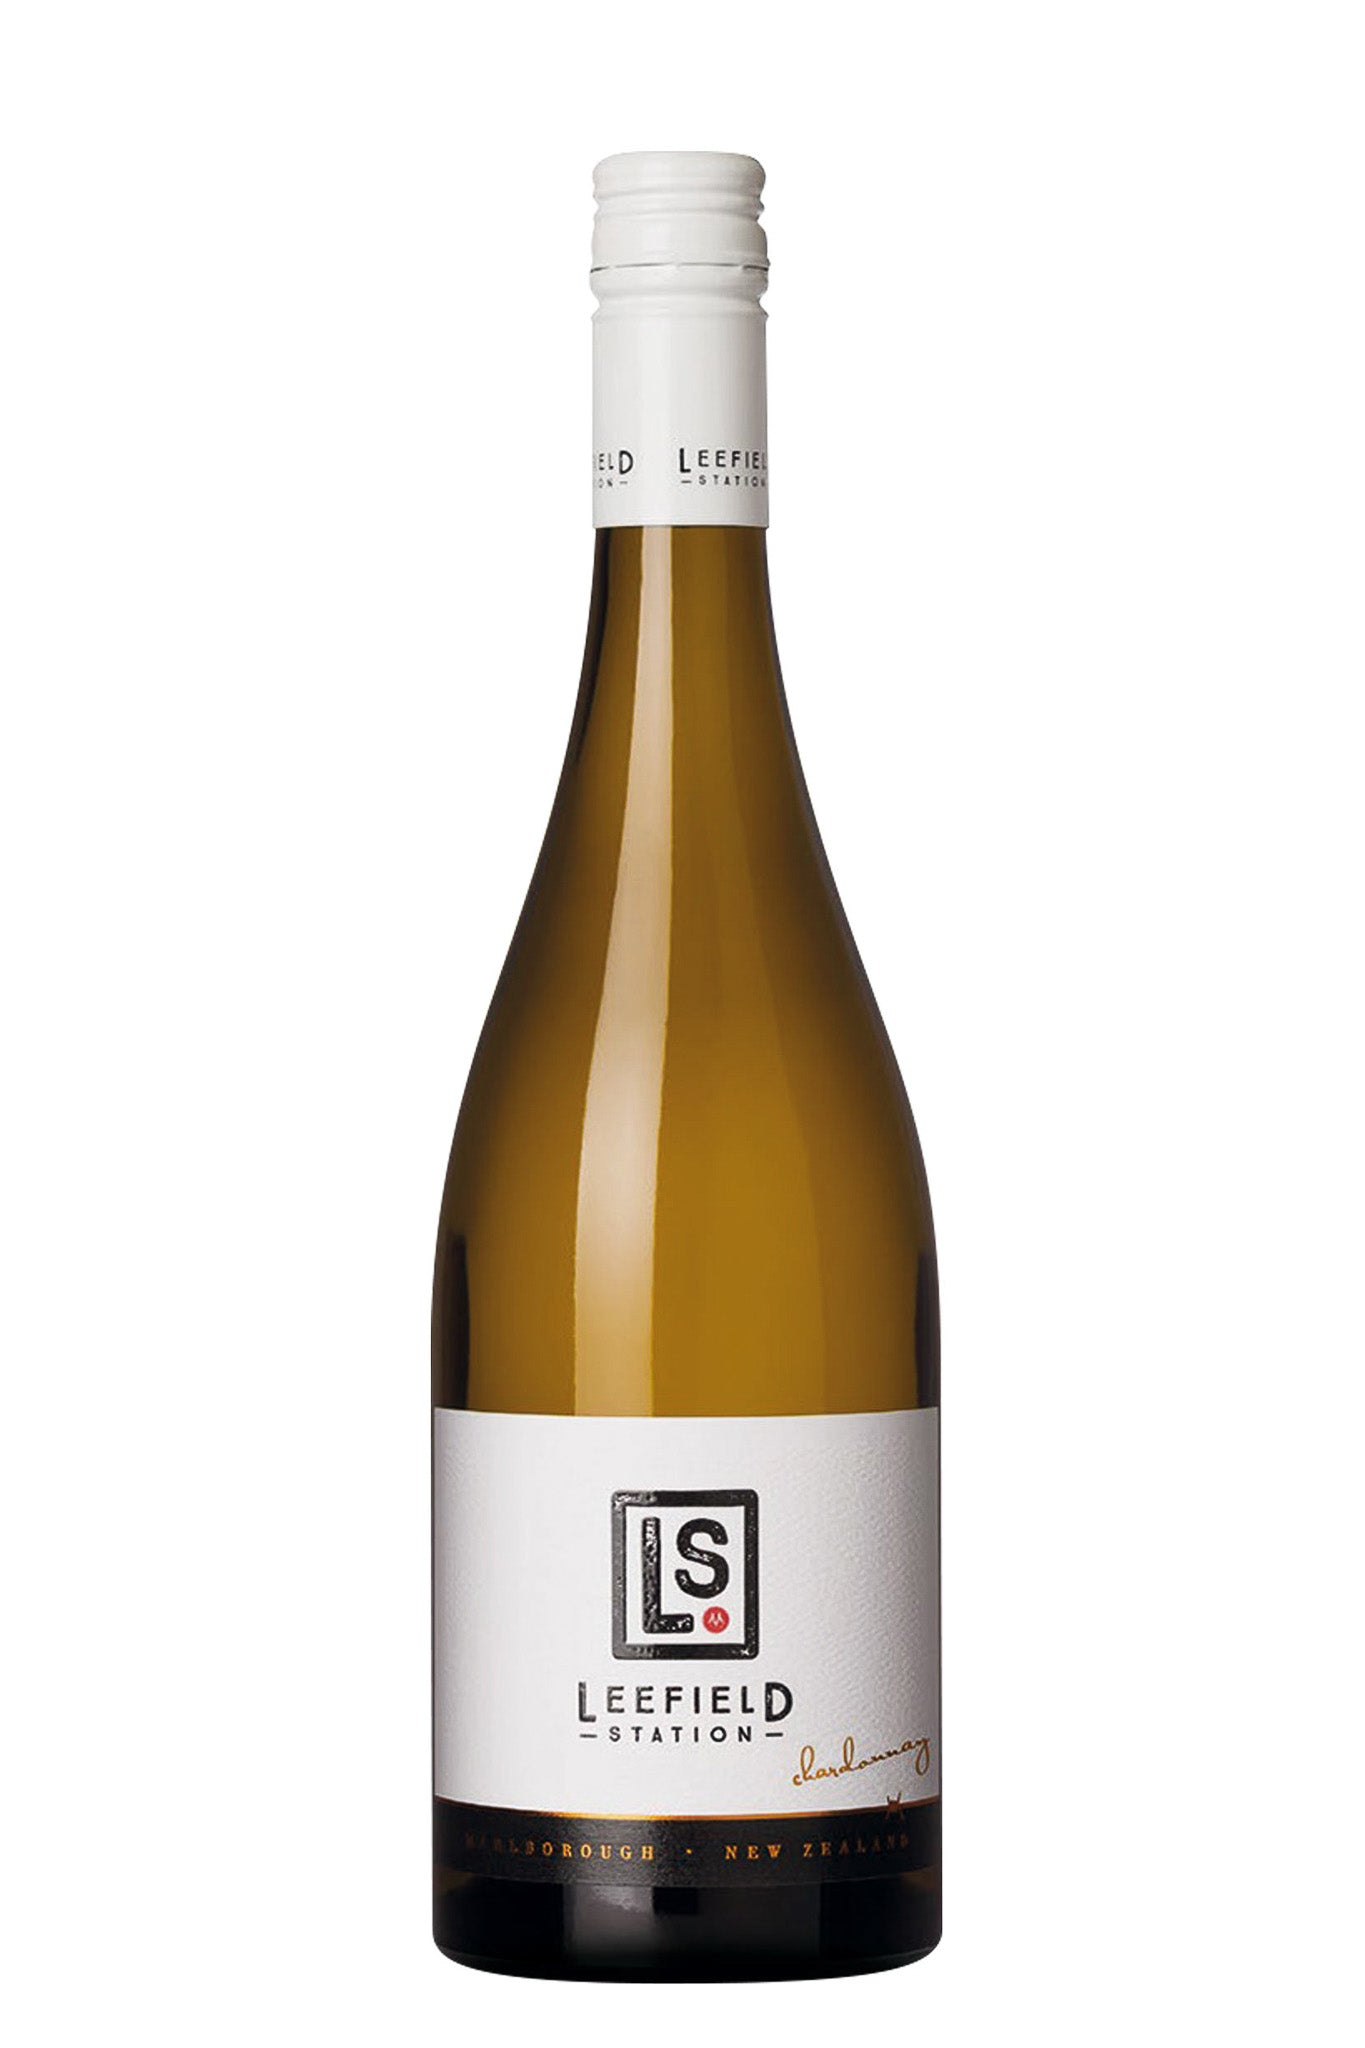 Marisco Leefield Station Chardonnay 2017 • Weisswein • Neuseeland • Marlborough • 750 ml